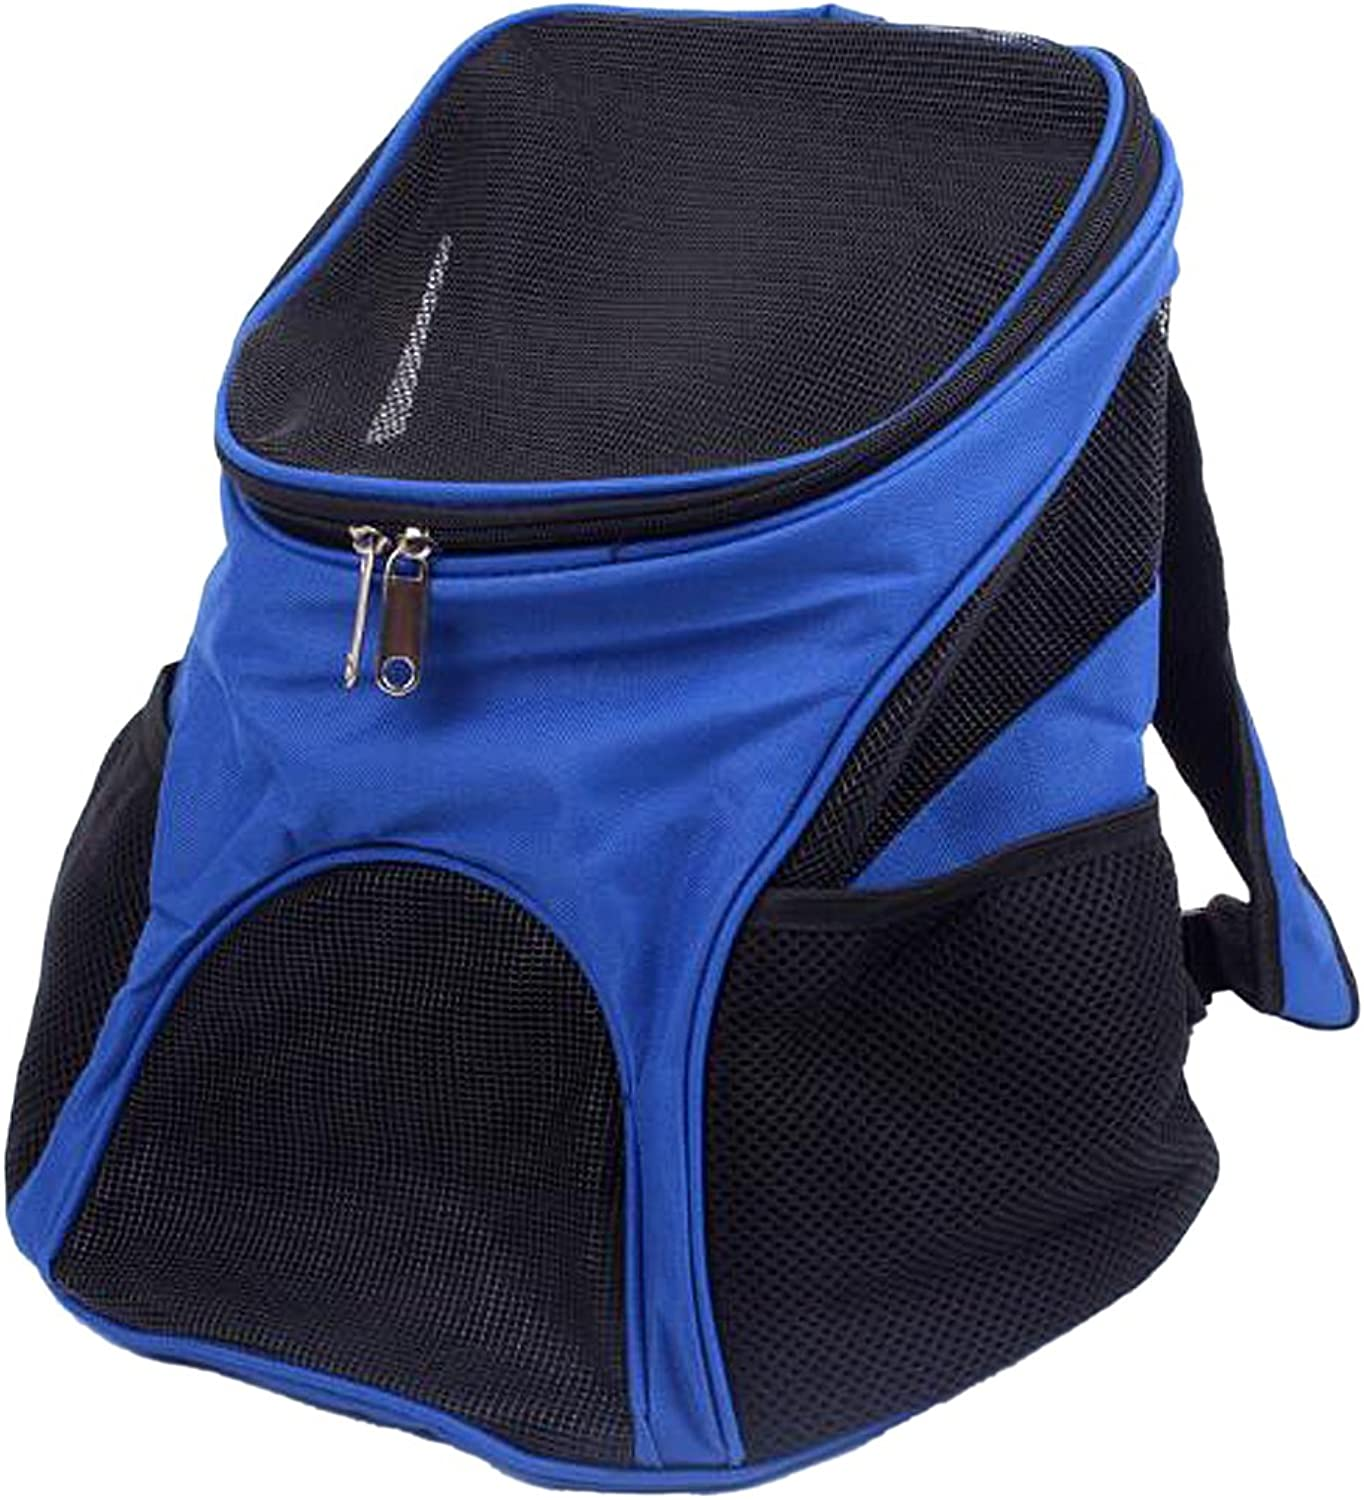 Portable Small Pet Knapsack Dog Travel Carrier Backpack Cat Puppy Holder Oxford Fabric Mesh Open for Trip